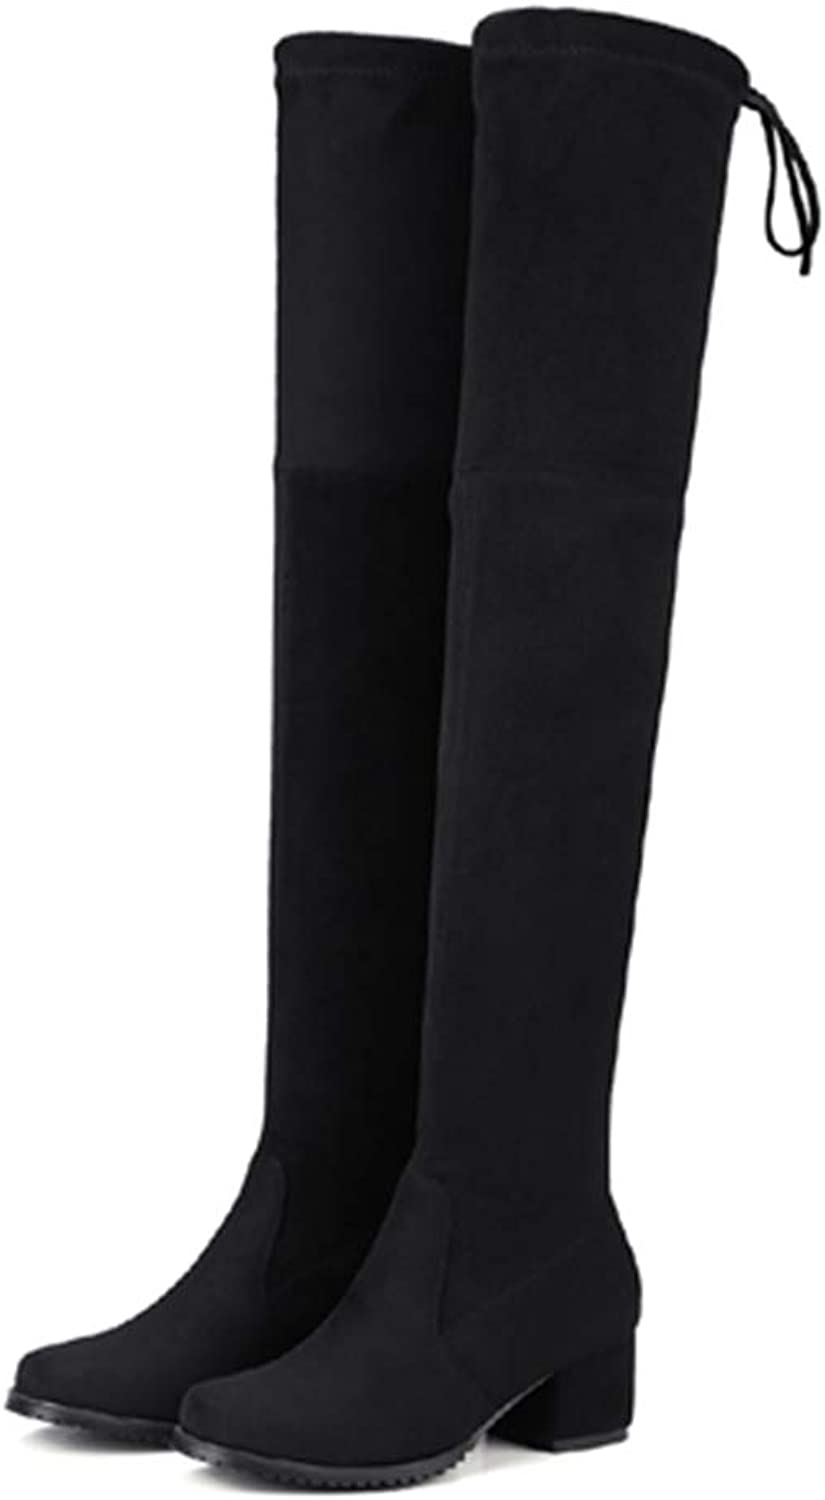 T-JULY Winter Boots for Women Stretch Fabric Thigh High Over The Knee shoes